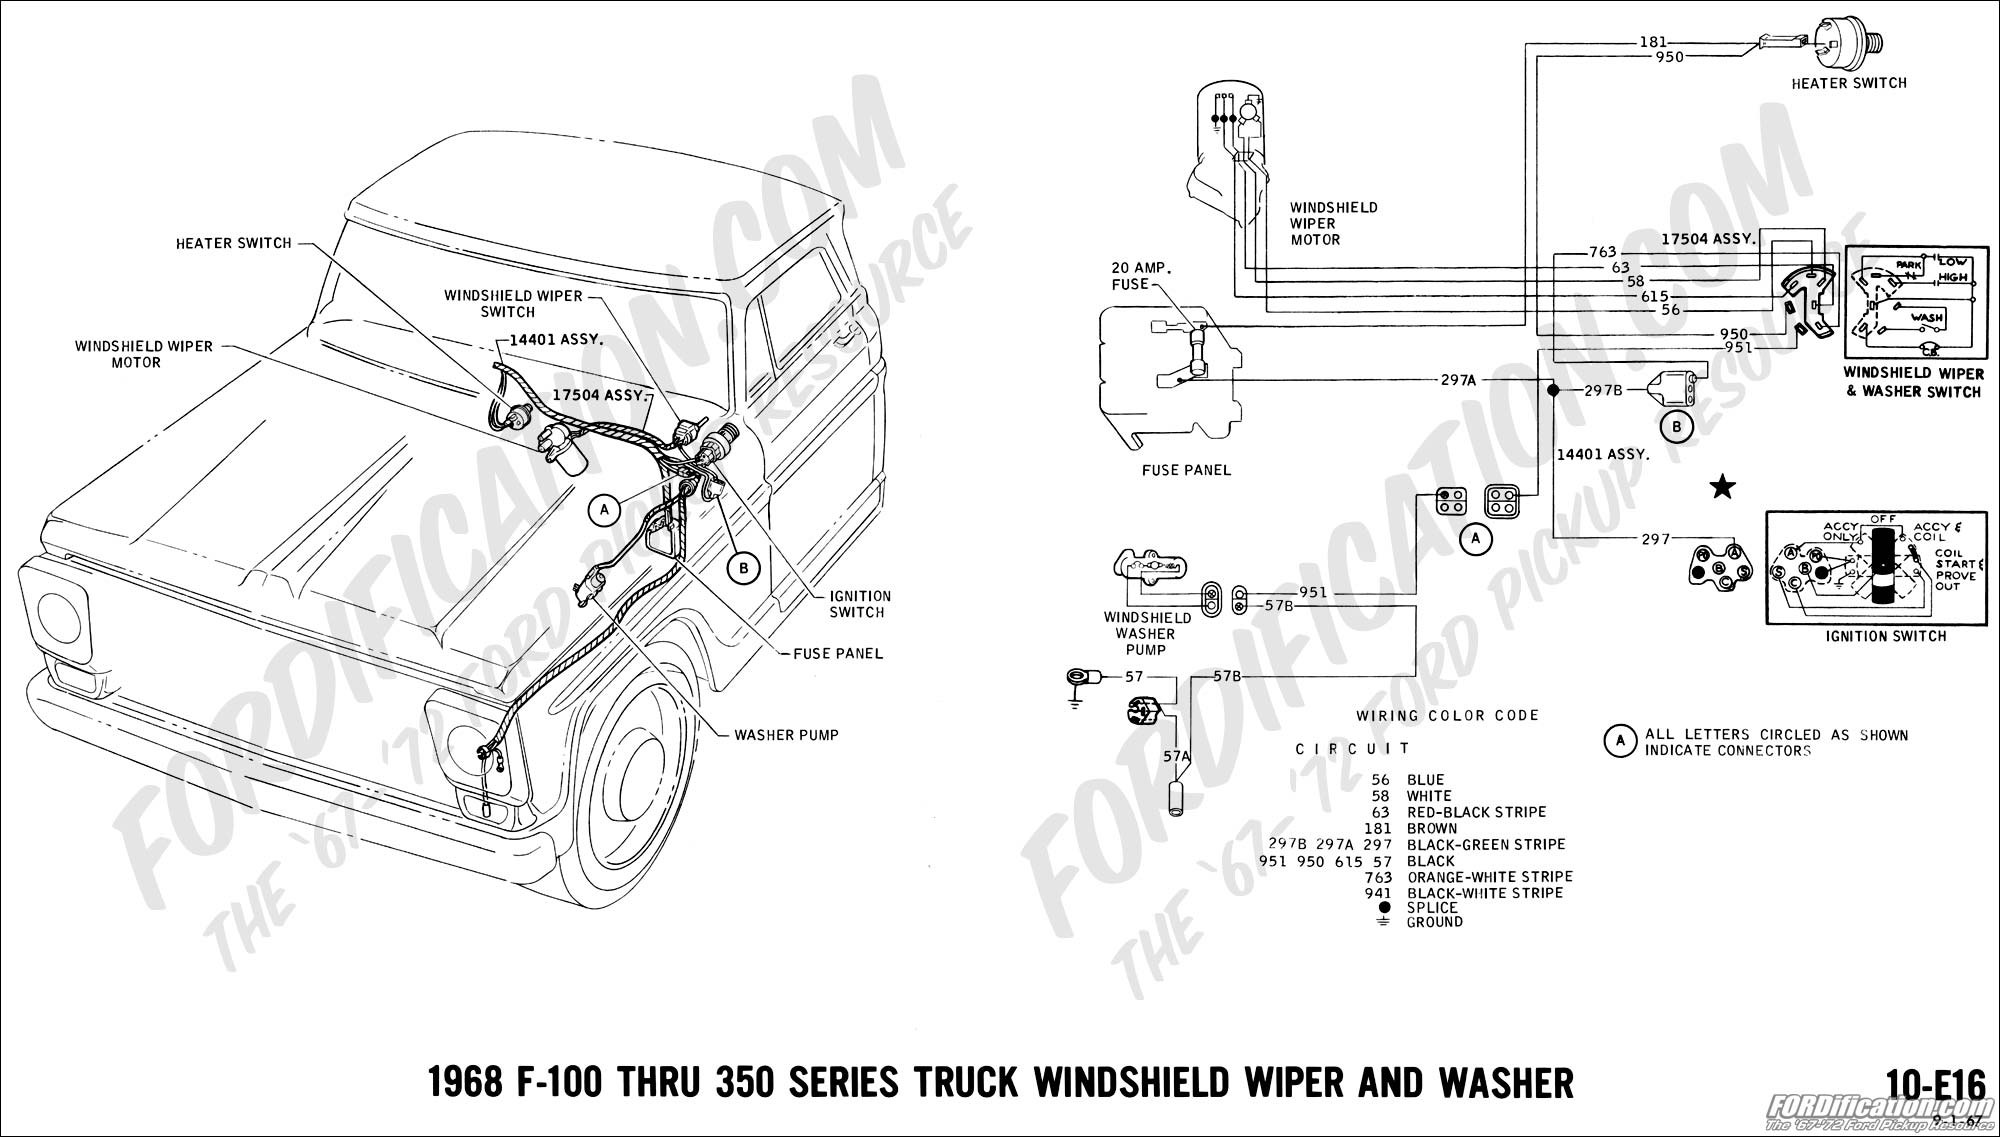 1968 ford f100 wiper switch wiring diagram